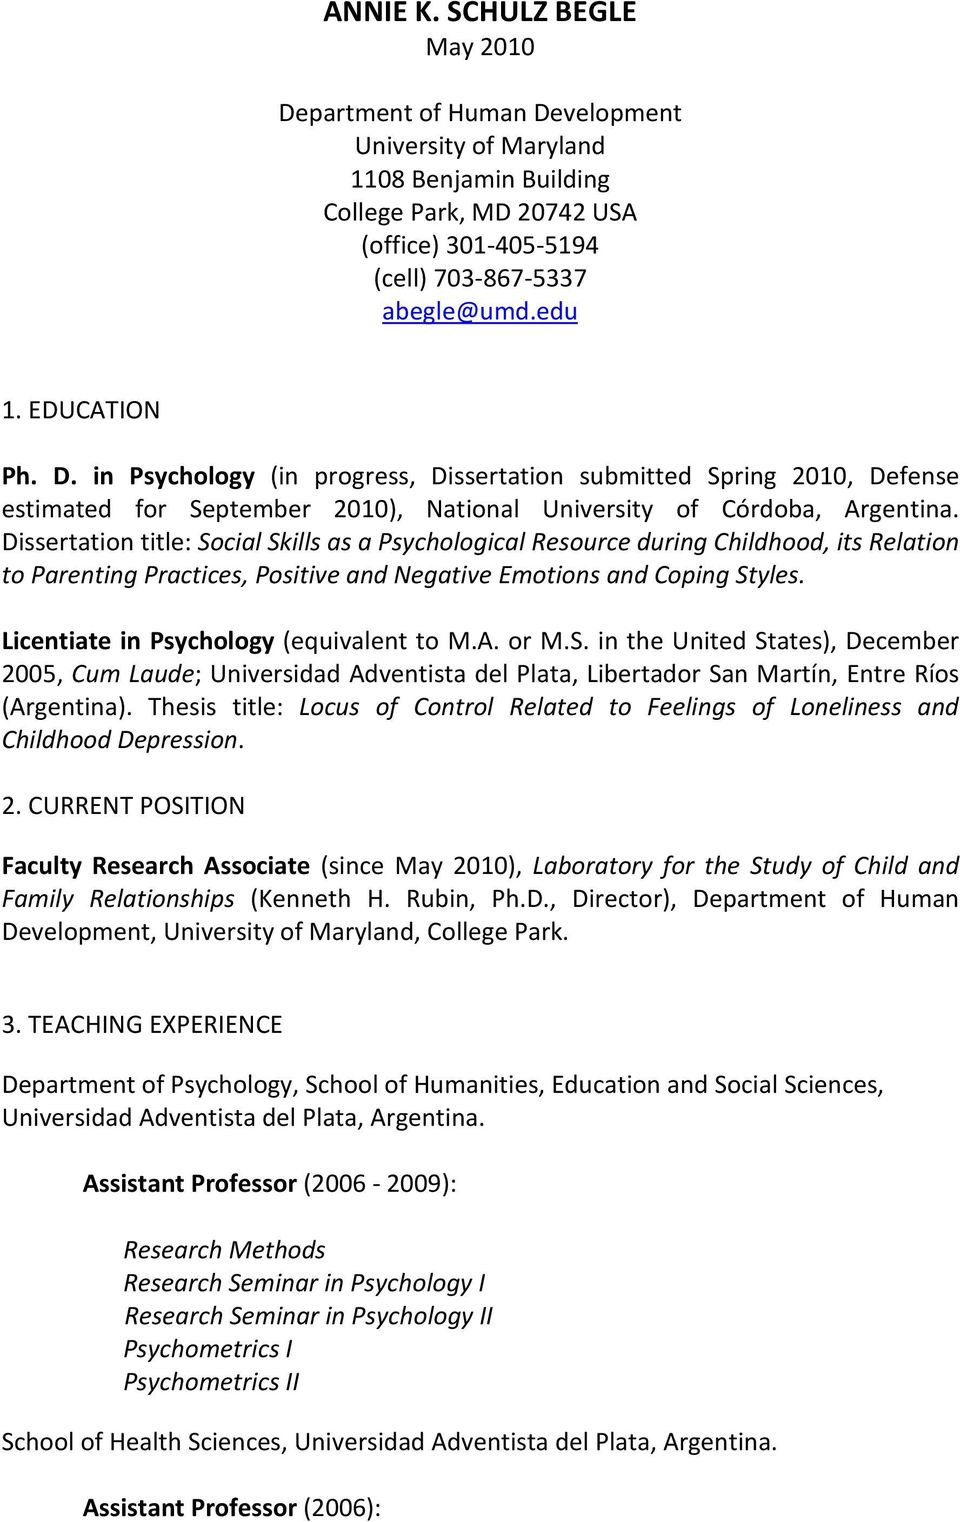 Dissertation title: Social Skills as a Psychological Resource during Childhood, its Relation to Parenting Practices, Positive and Negative Emotions and Coping Styles.